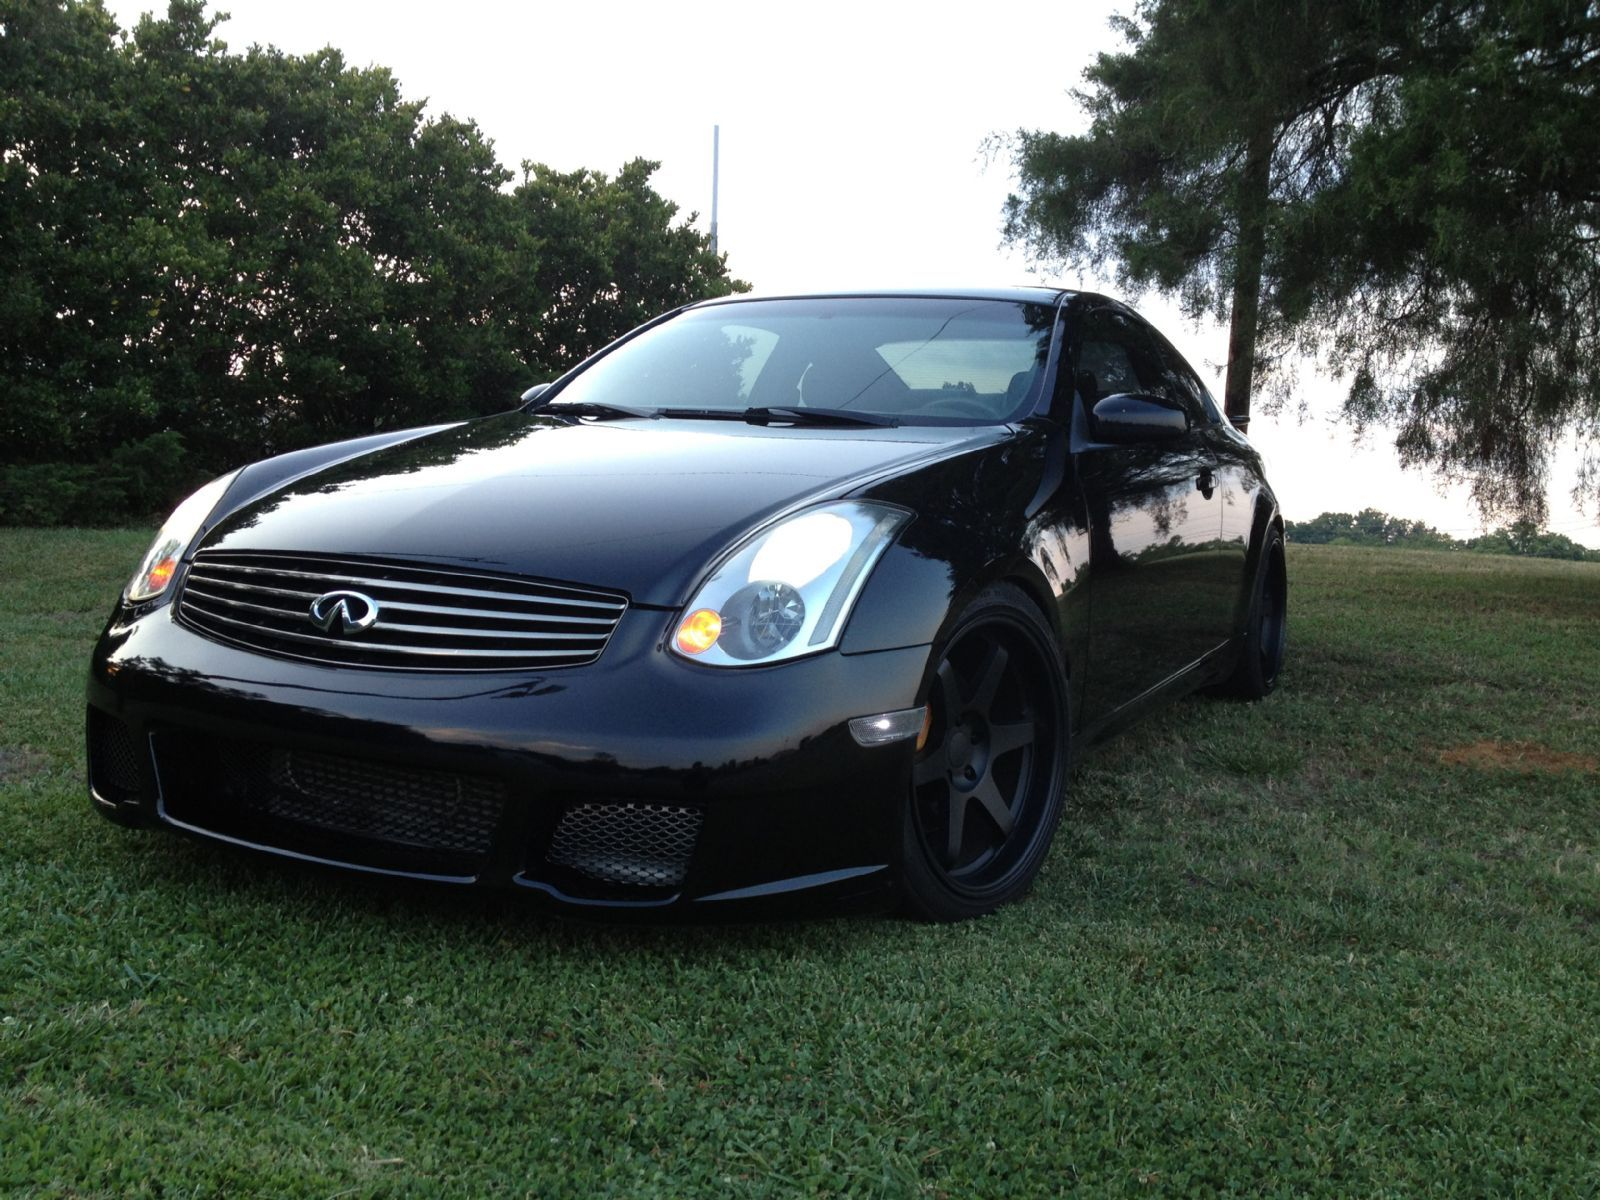 Infinity G35 Image Custome 2003 Infiniti G35 Sport Coupe For